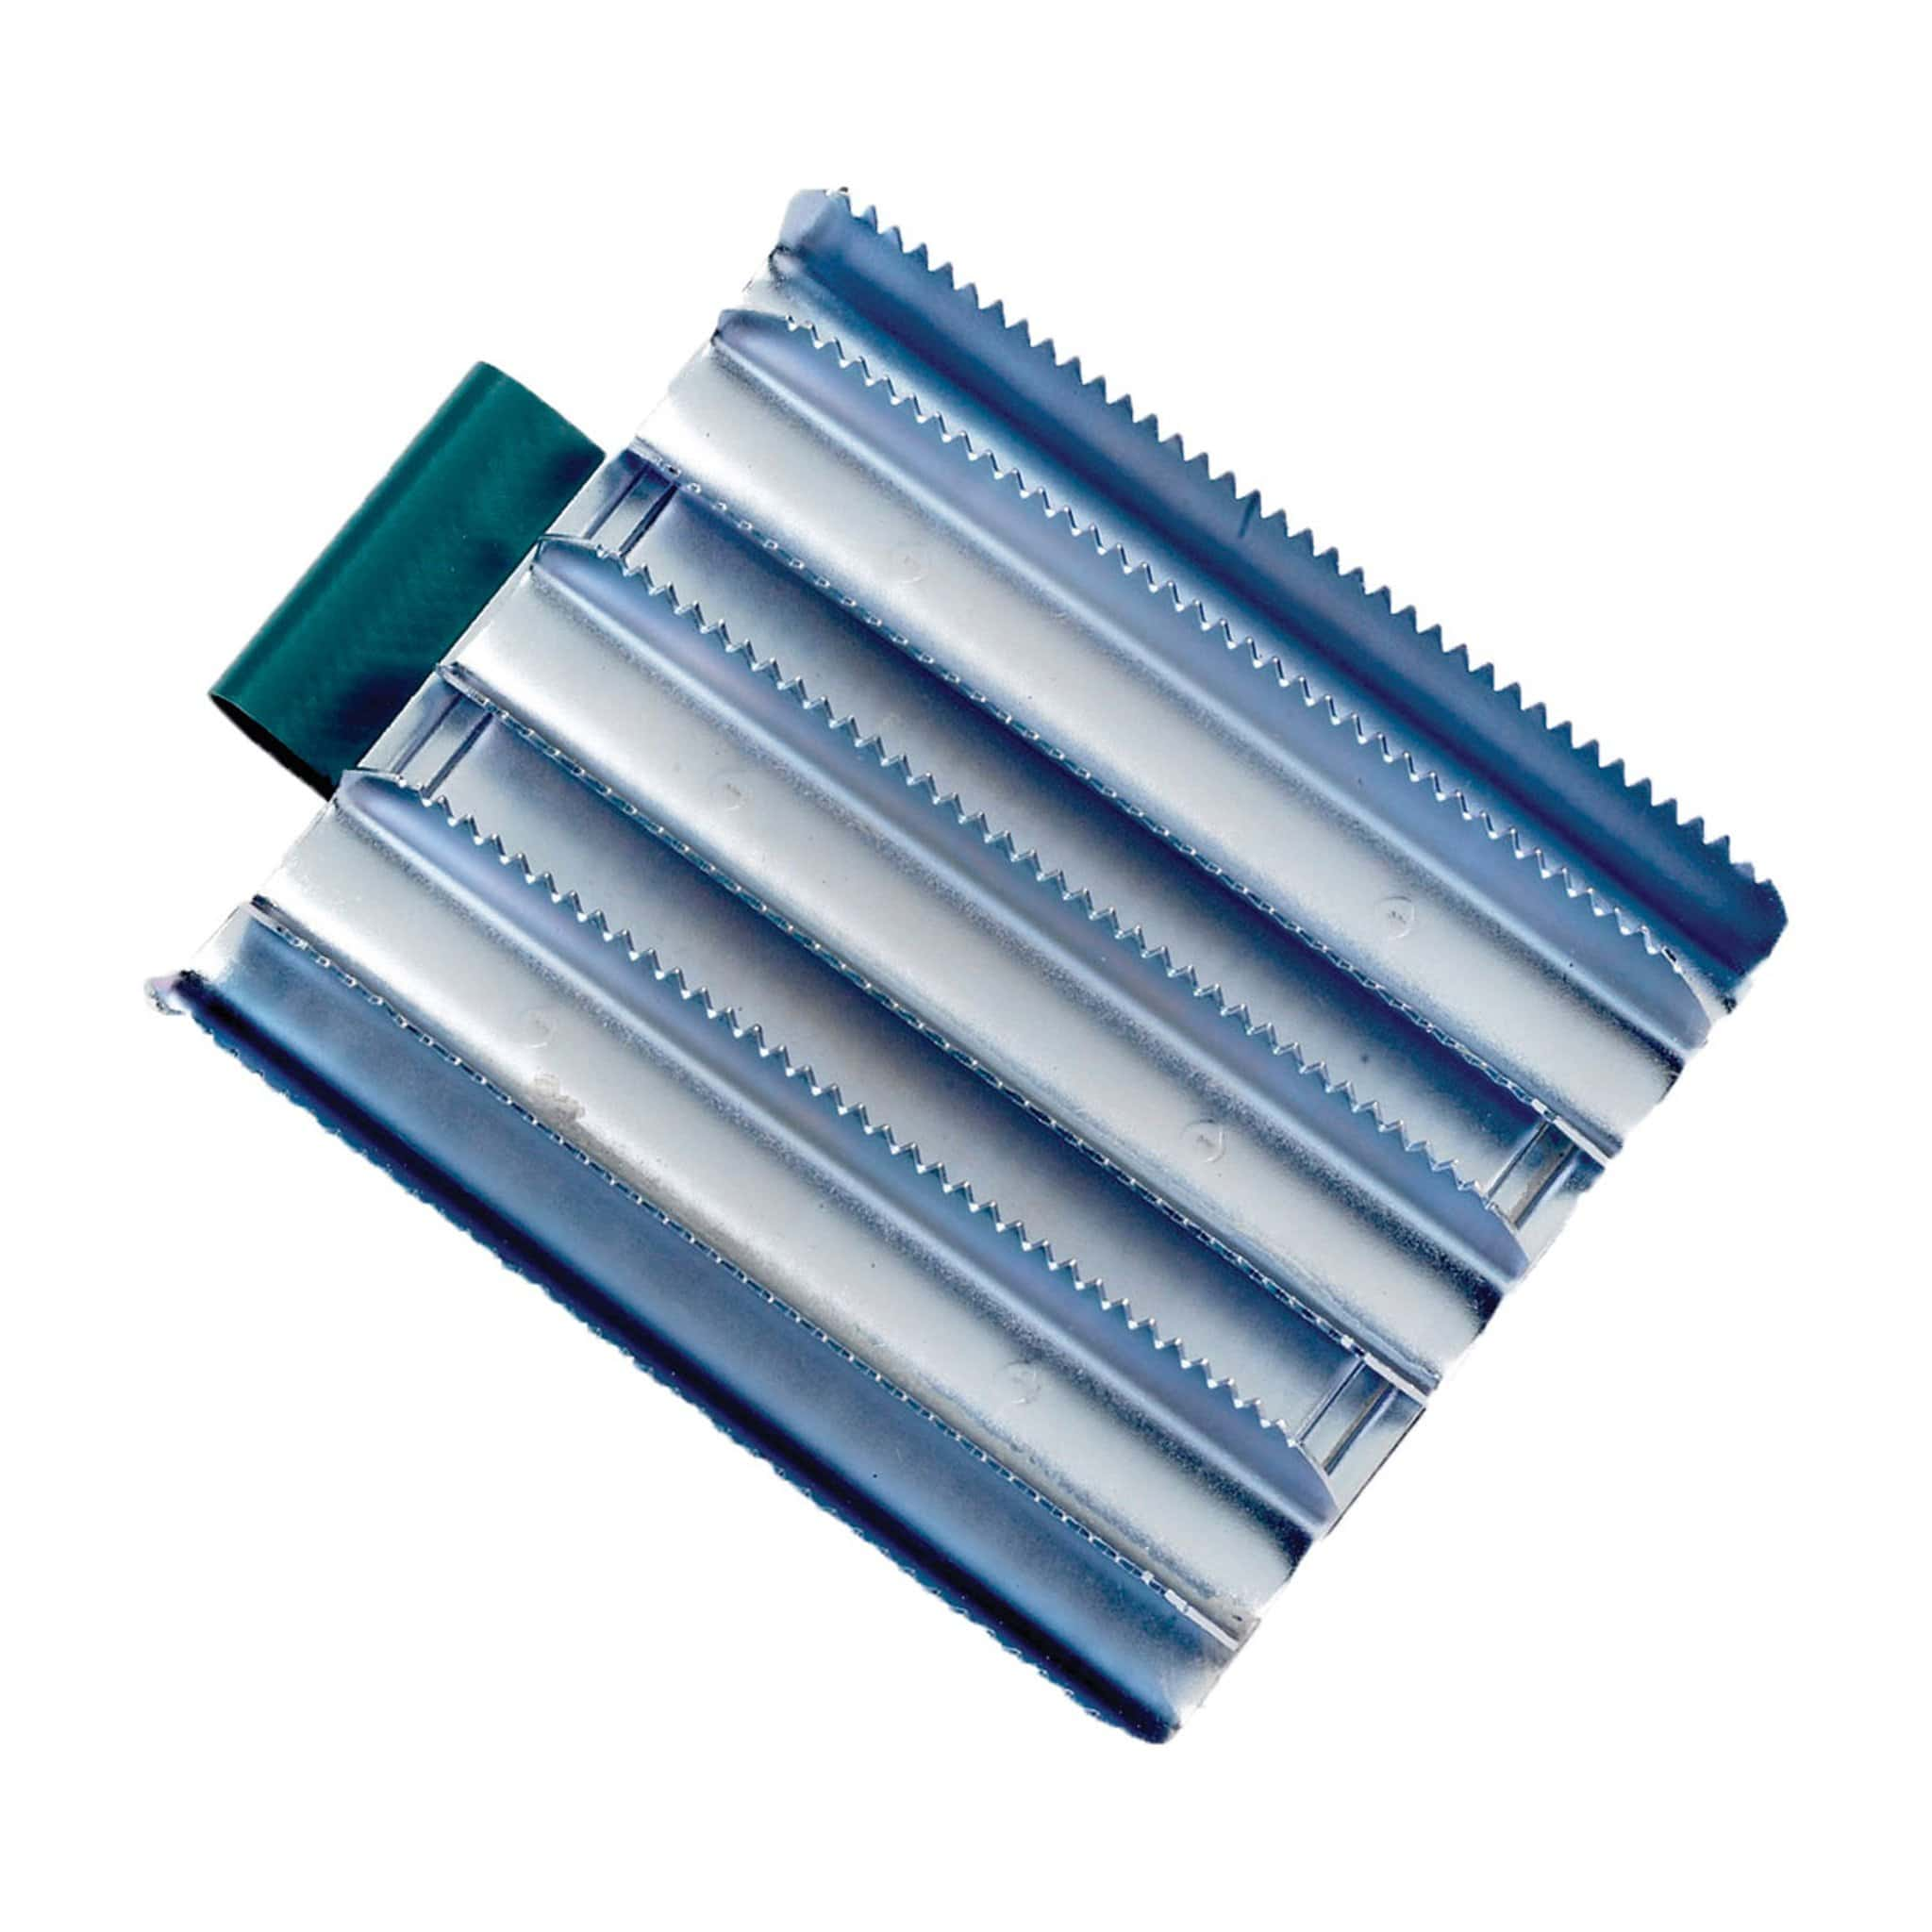 Lincoln Military Metal Curry Comb 4325.